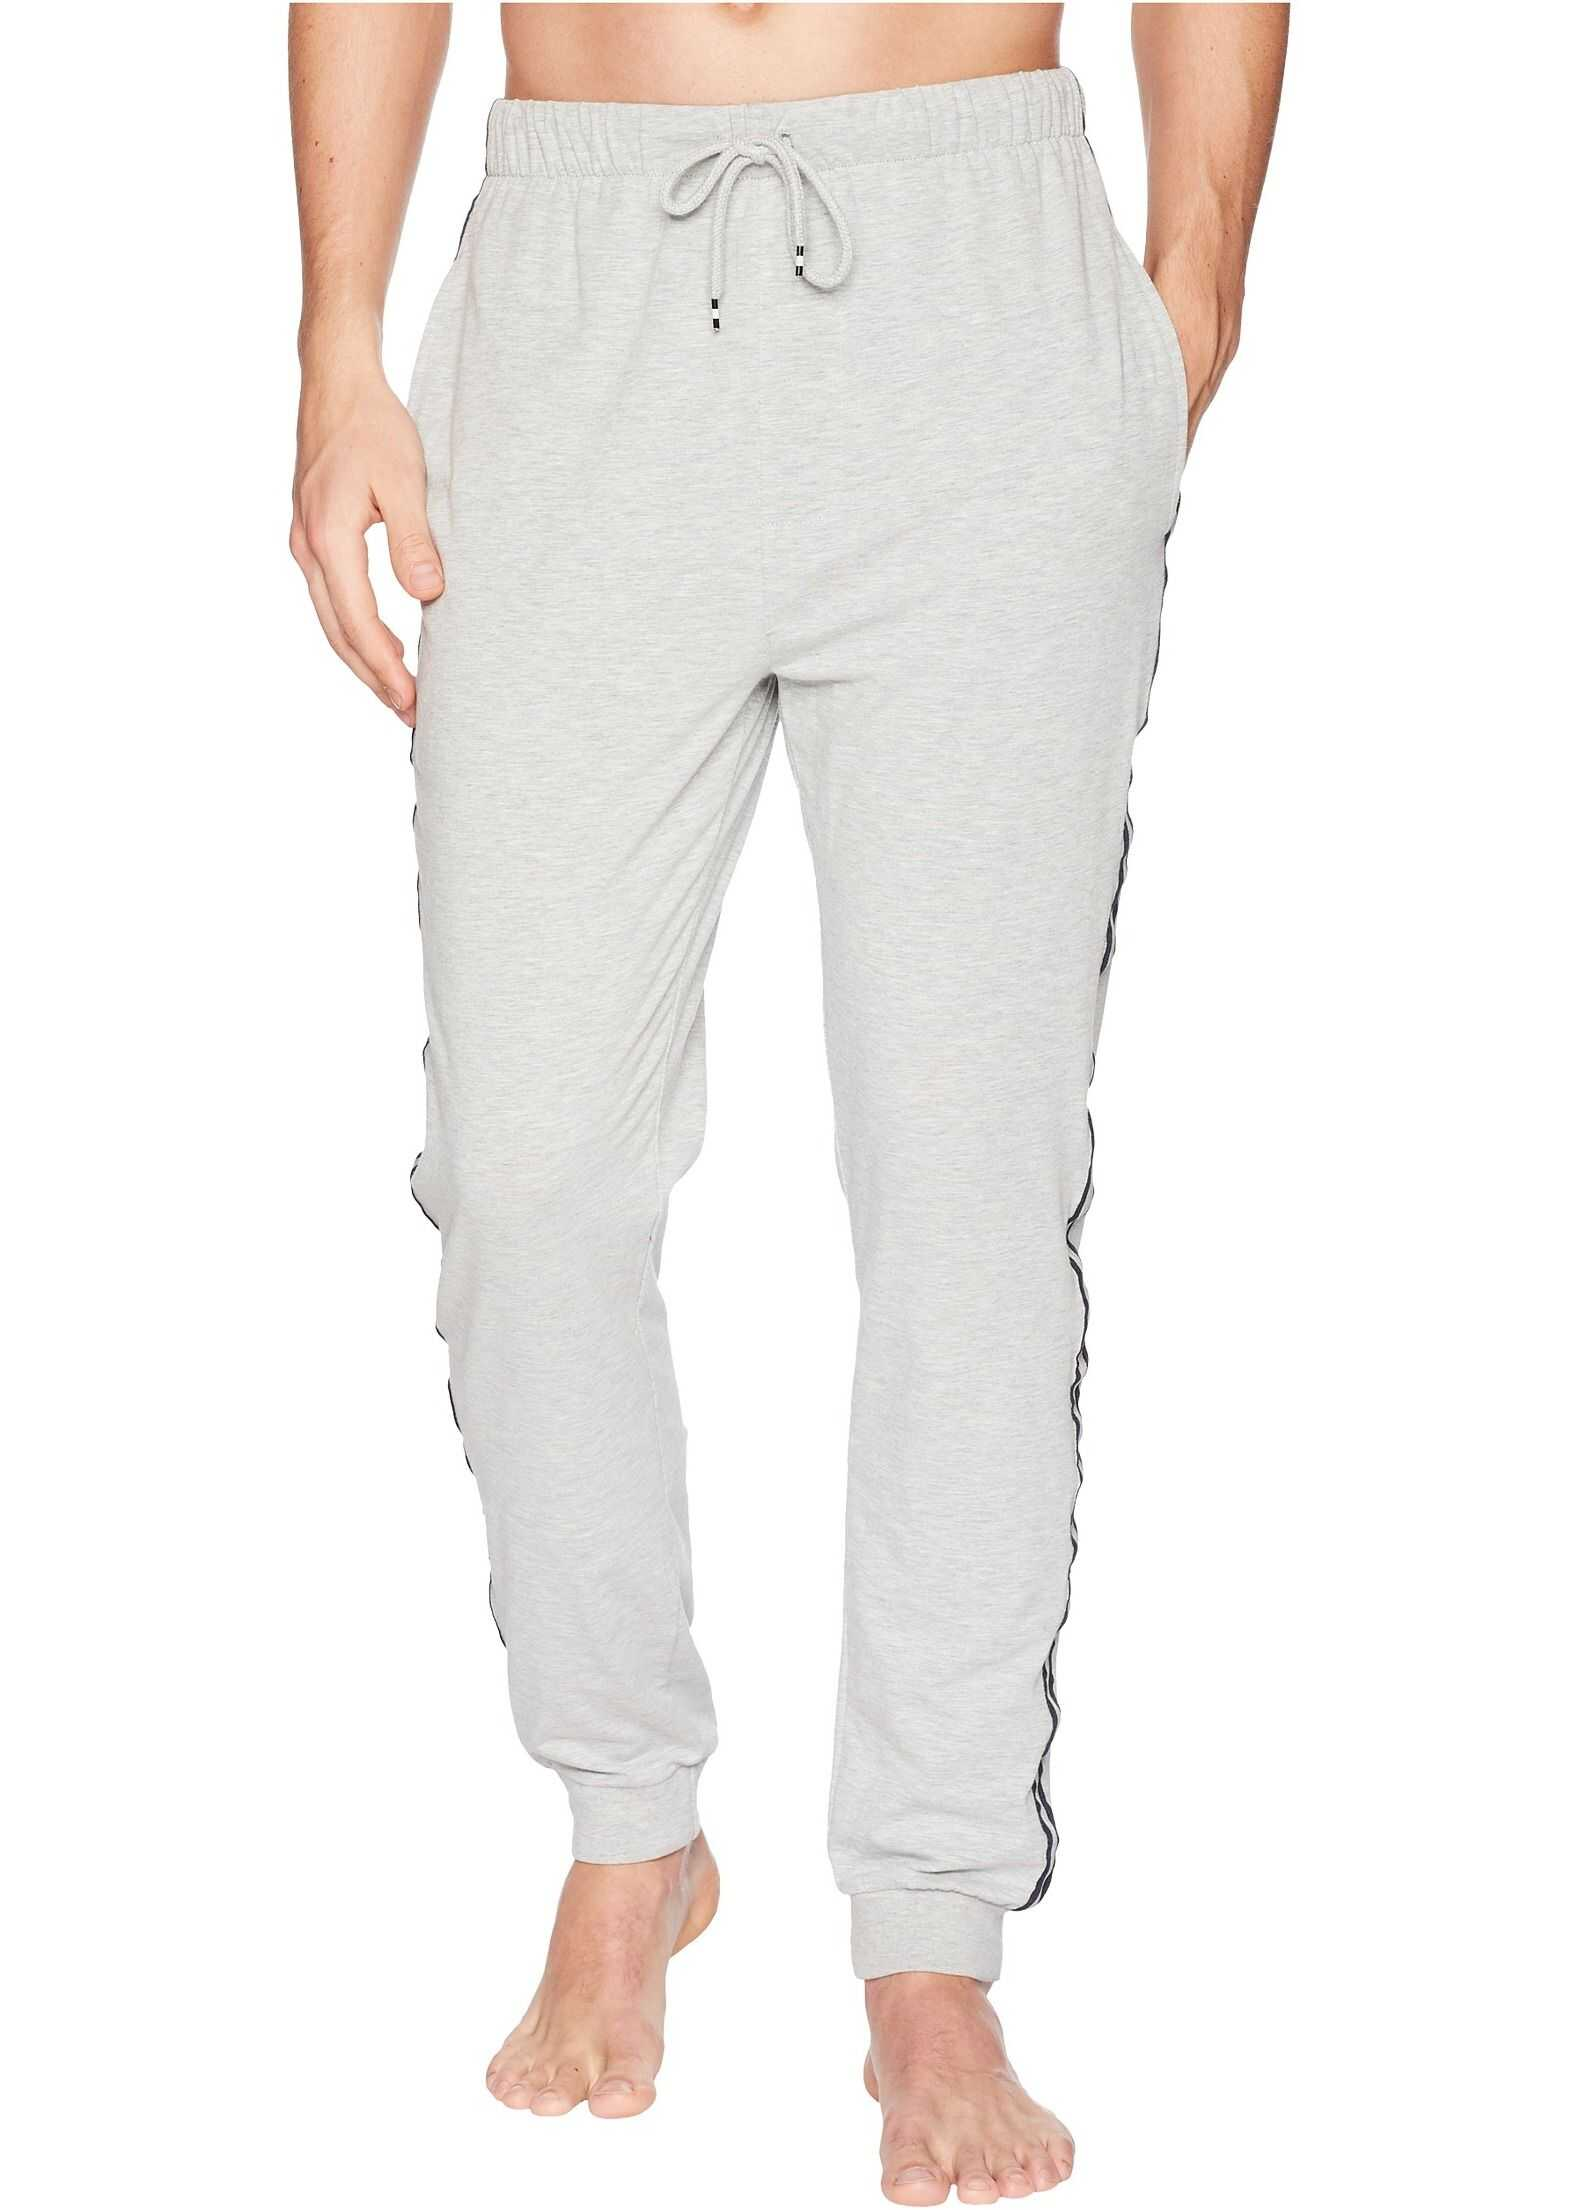 Kenneth Cole Reaction Jogger Pants with Side Tape Light Grey Heather